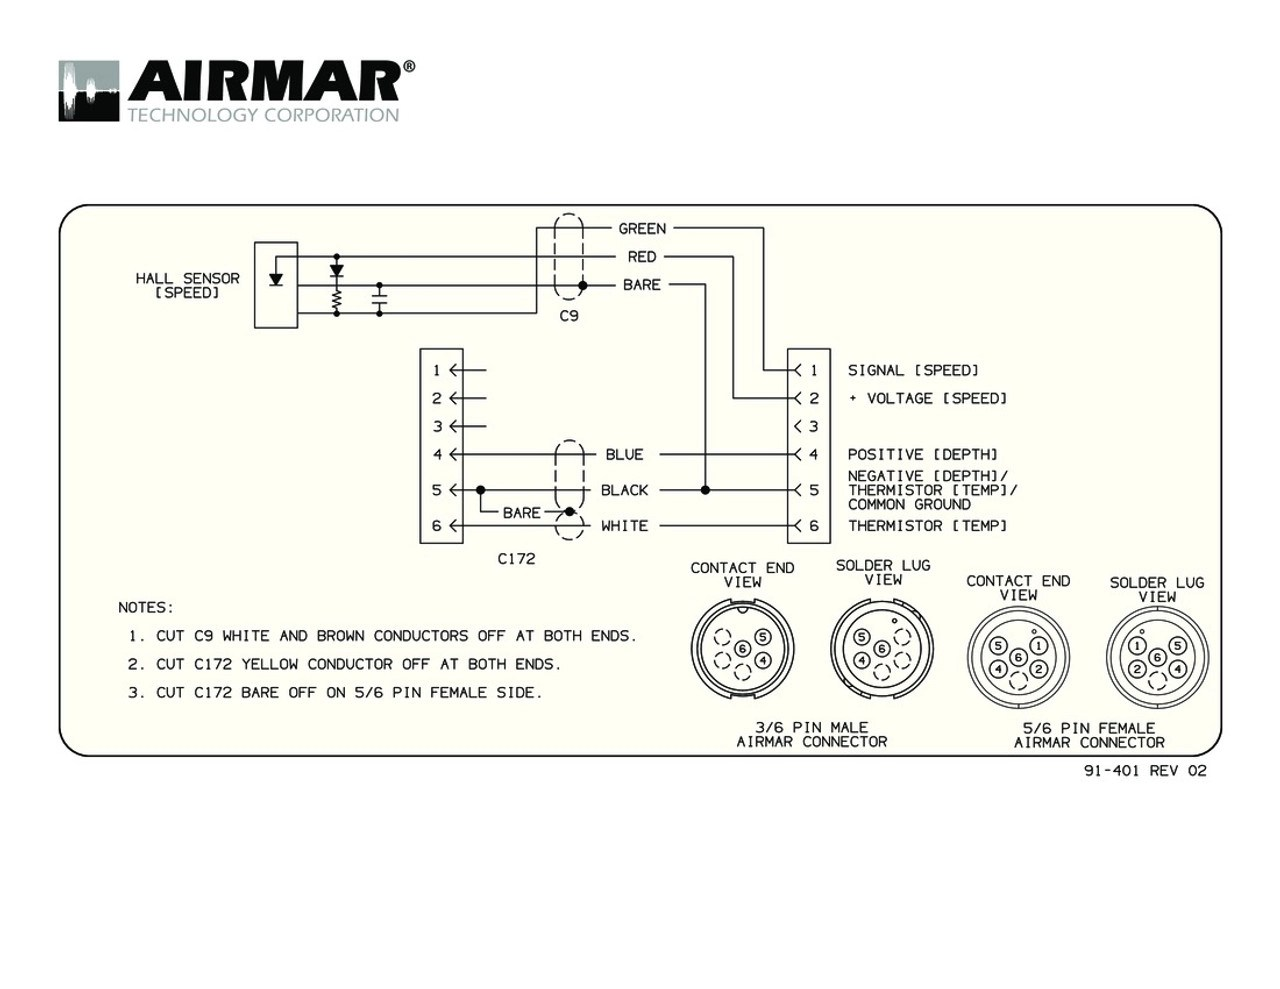 hight resolution of airmar wiring diagram garmin 6 pin s blue bottle marinespeed sensor with y cable